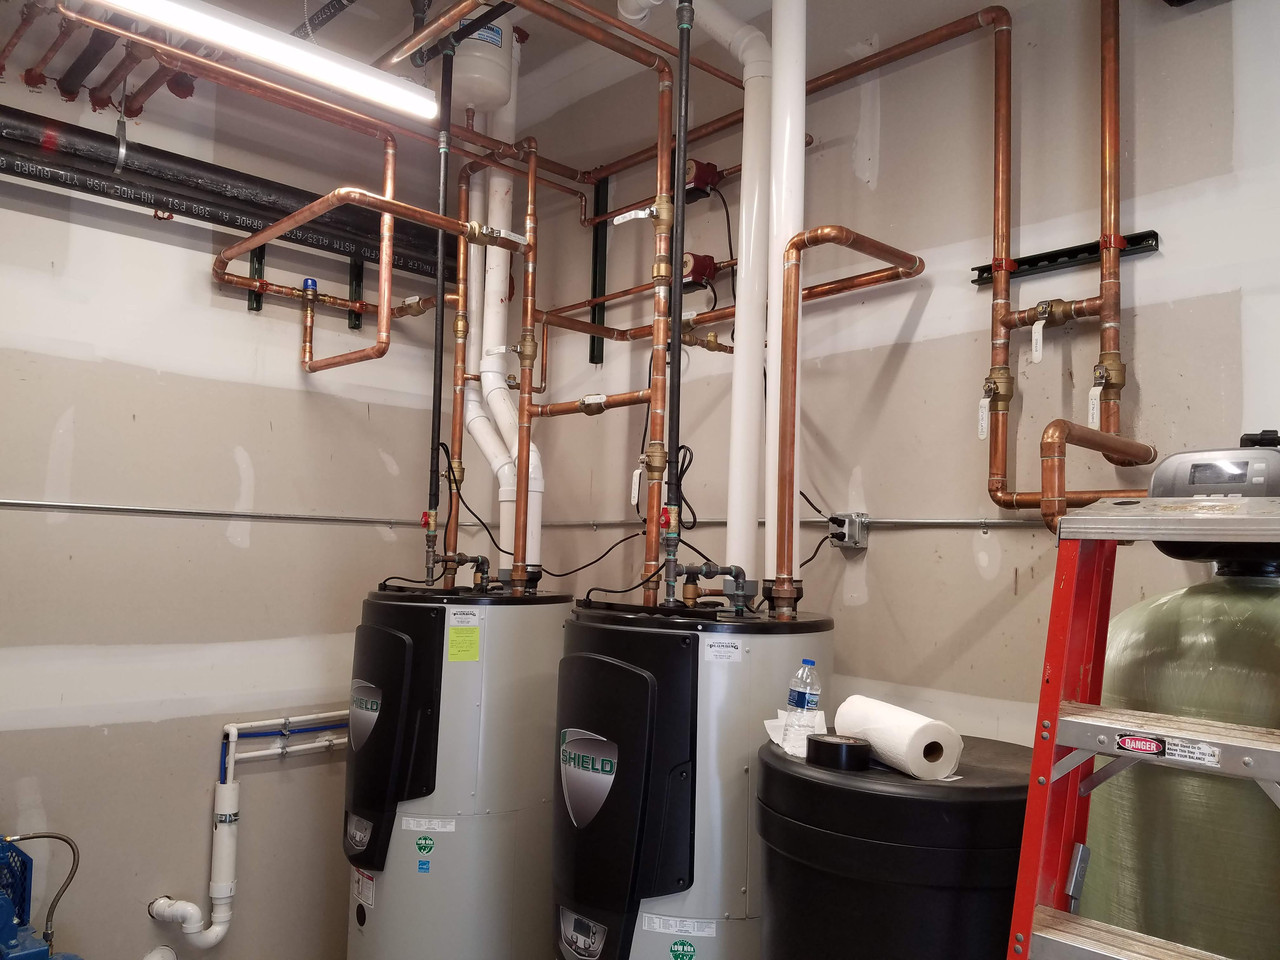 Commercial Water Heater-Medical Center